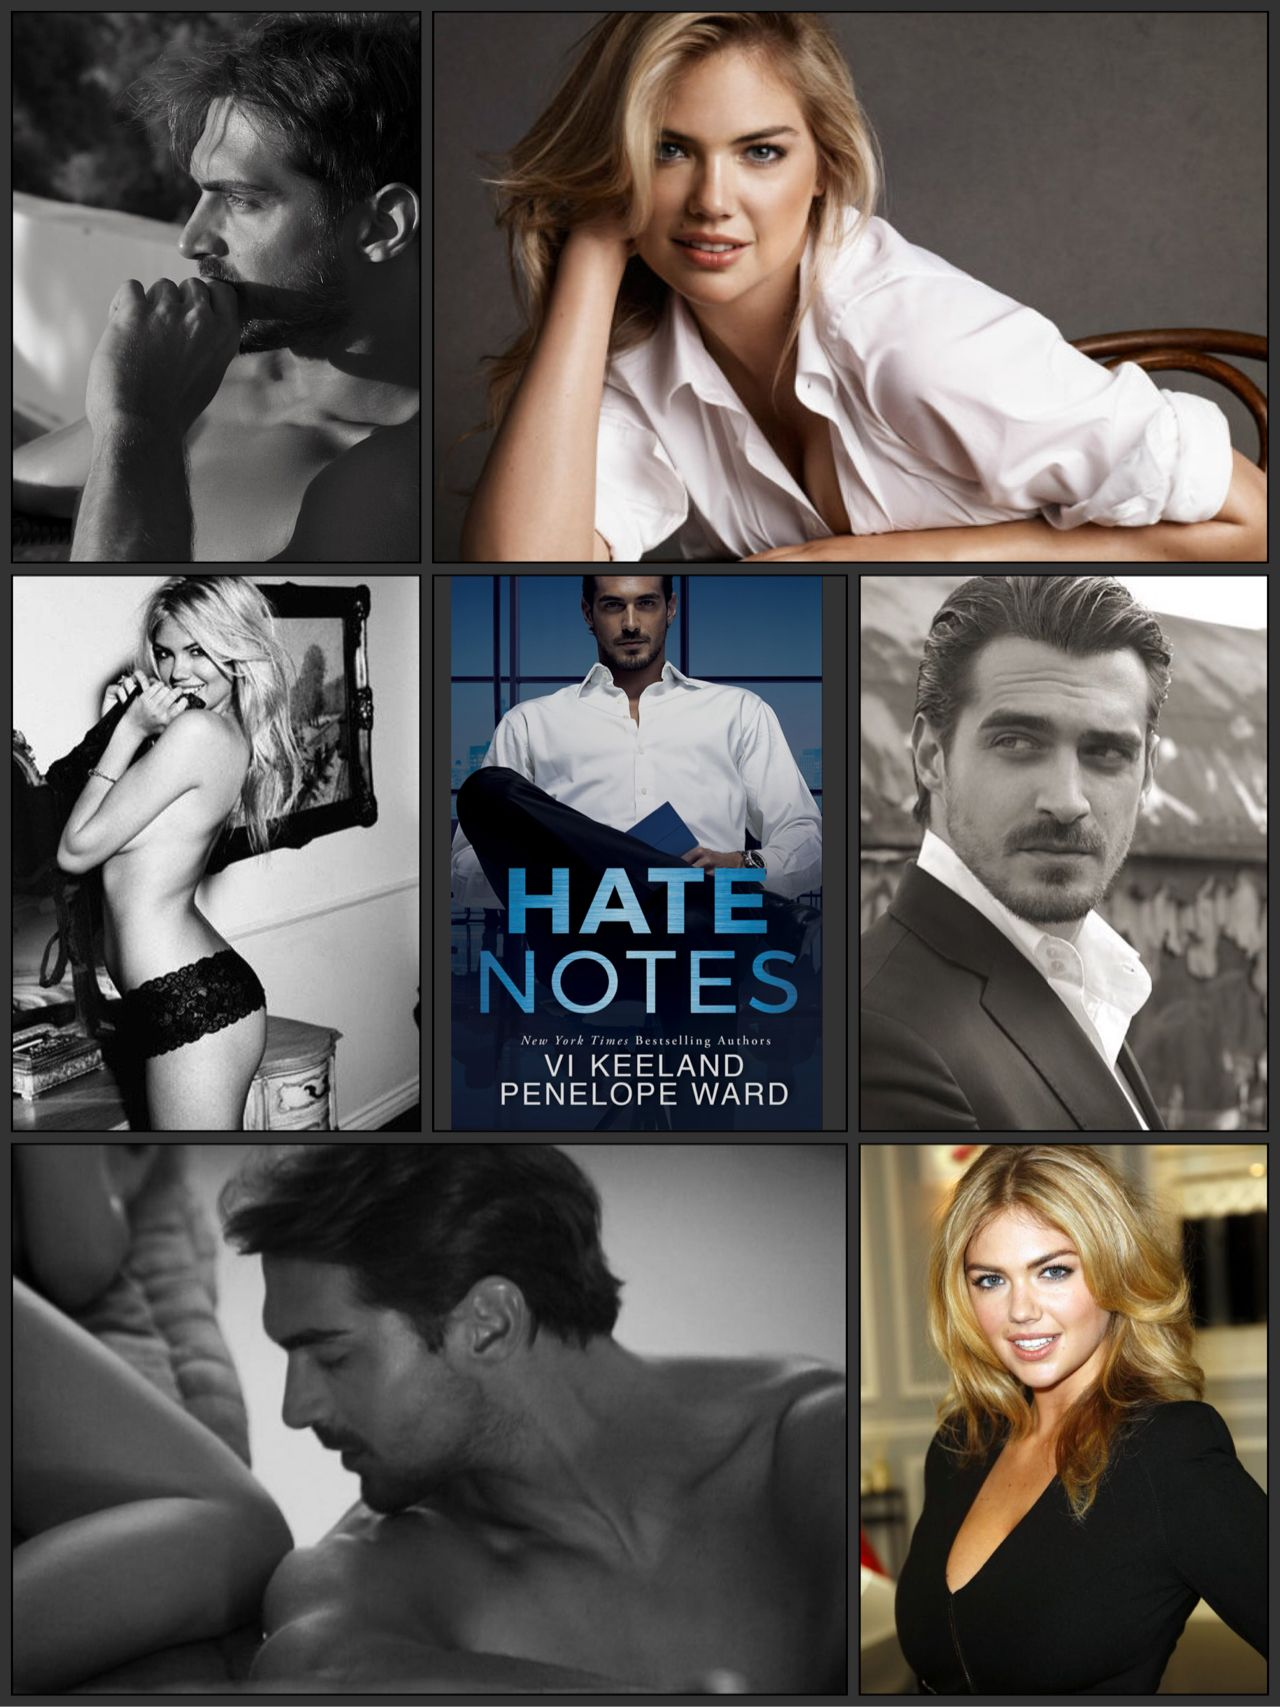 Vi Keeland Libros Hate Notes By Vi Keeland Penelope Ward Made By Ce Book